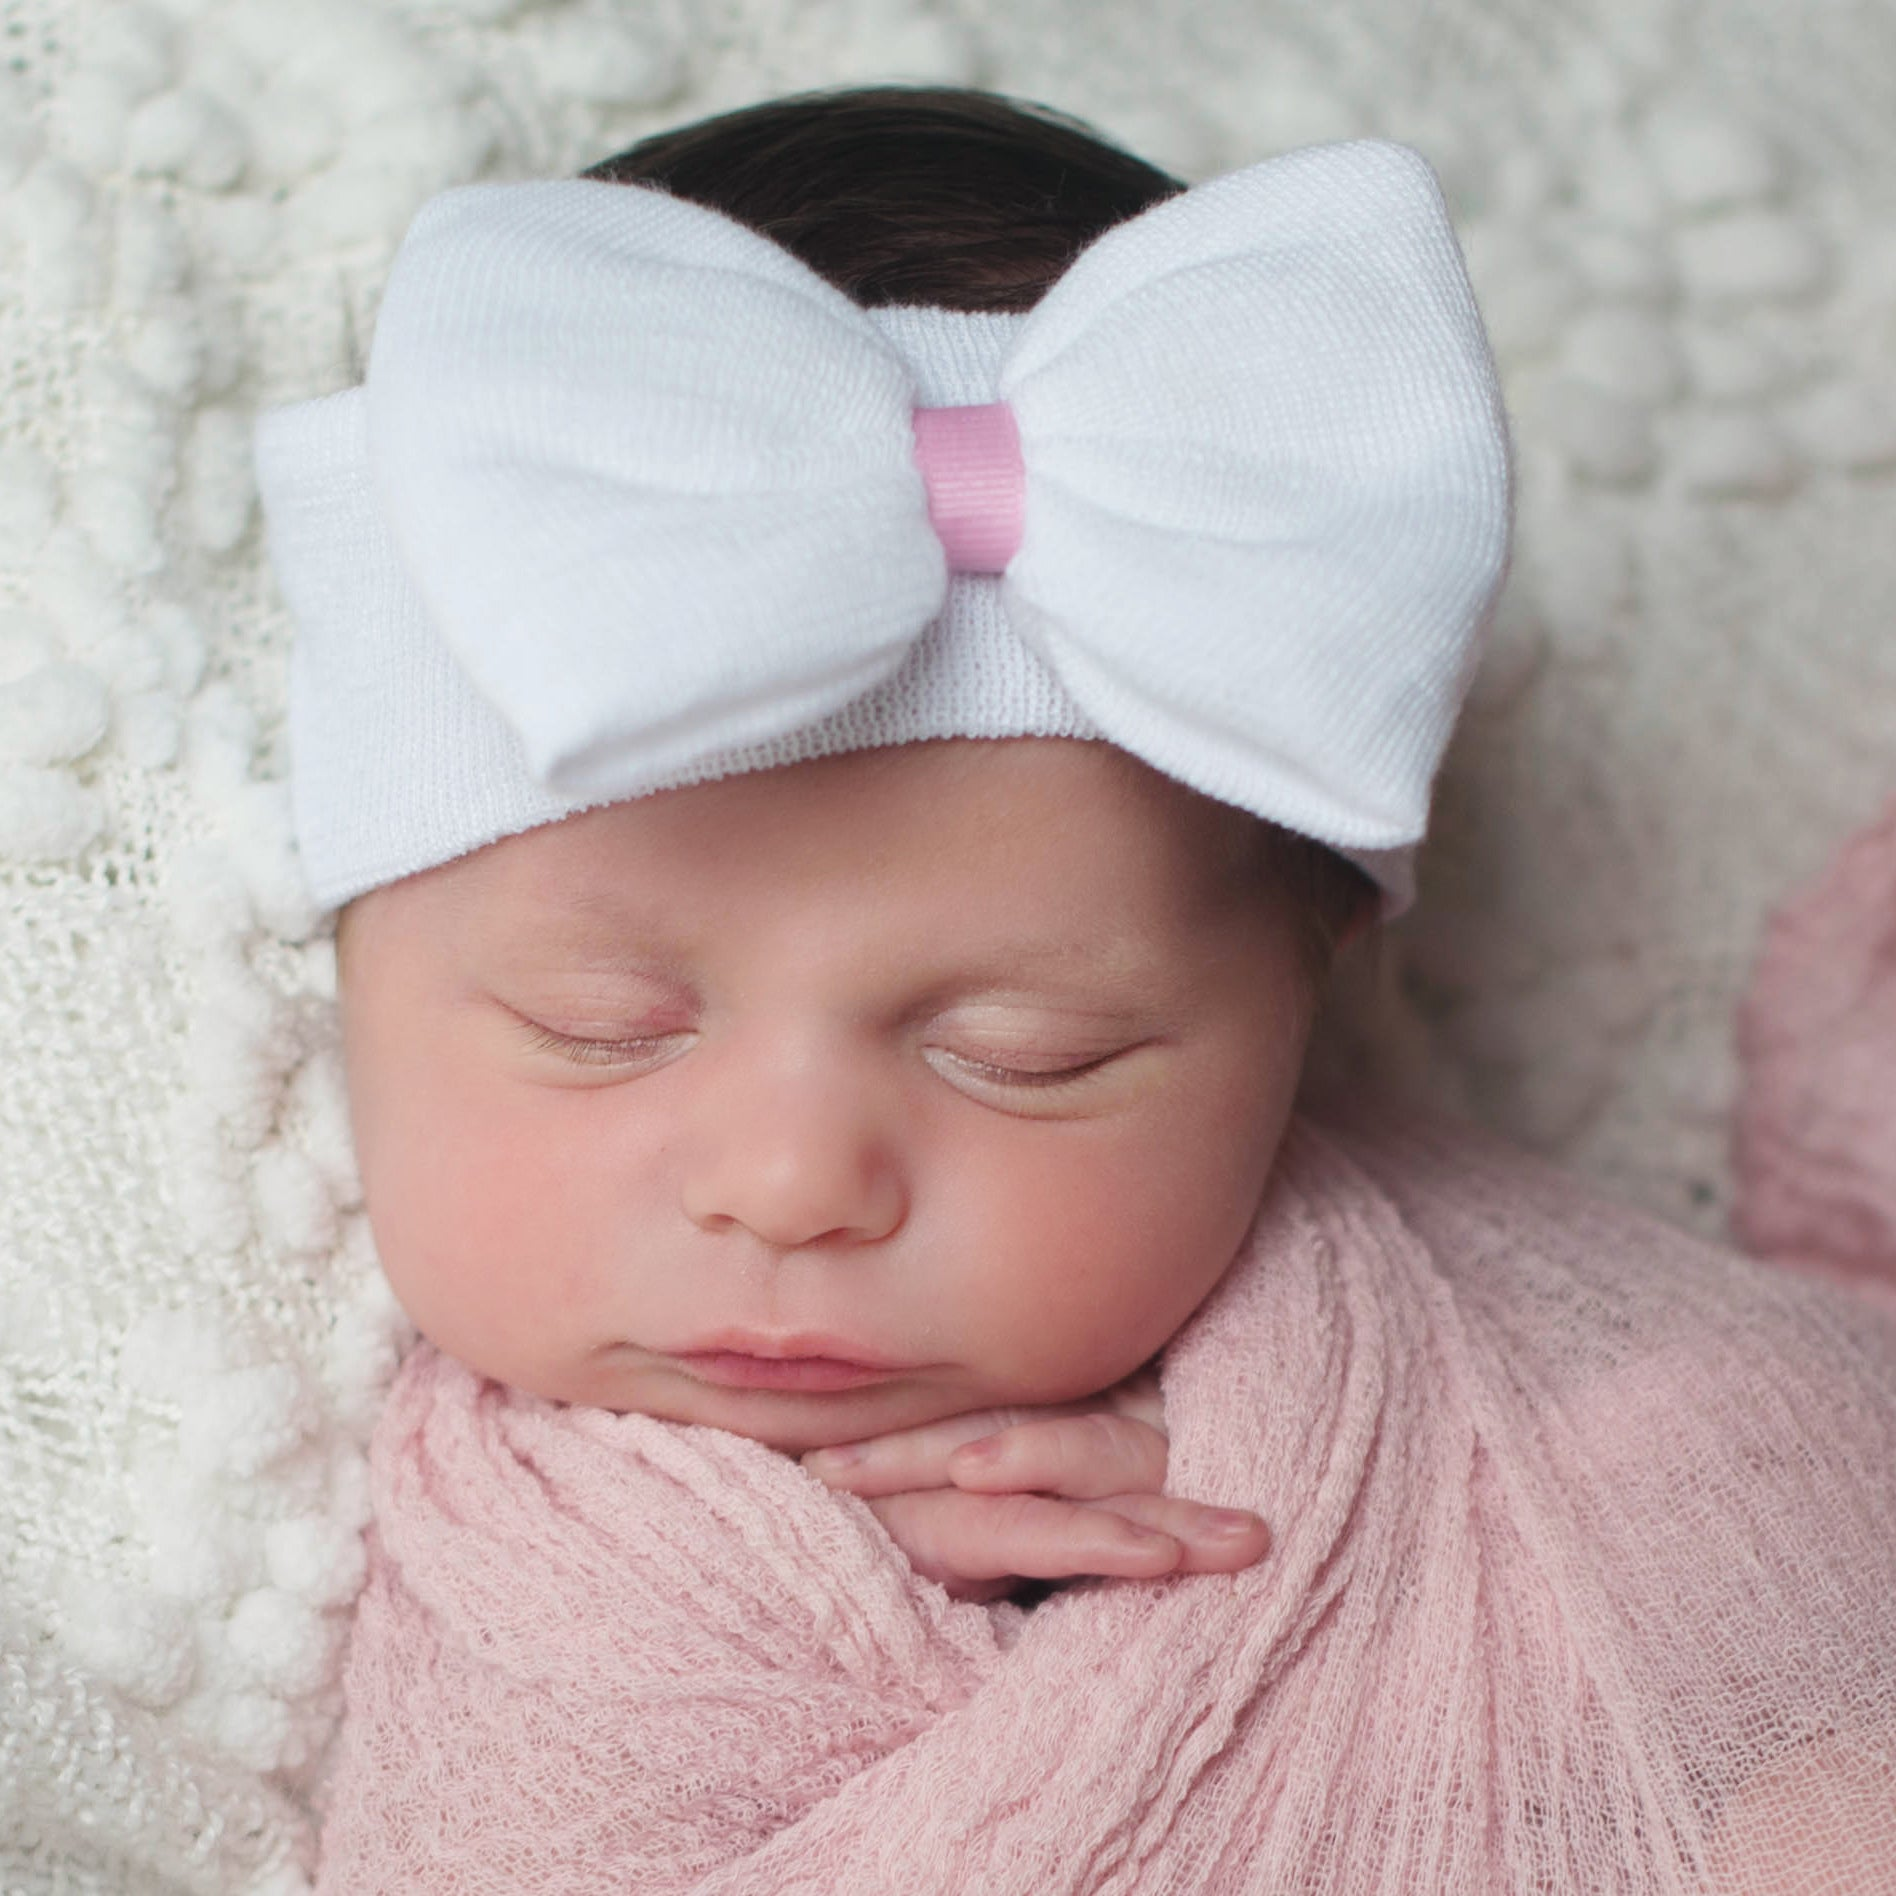 ilybean Nursery Newborn White Headband Newborn Girl Nursery Beanie Headband with Pink Ribbon Center